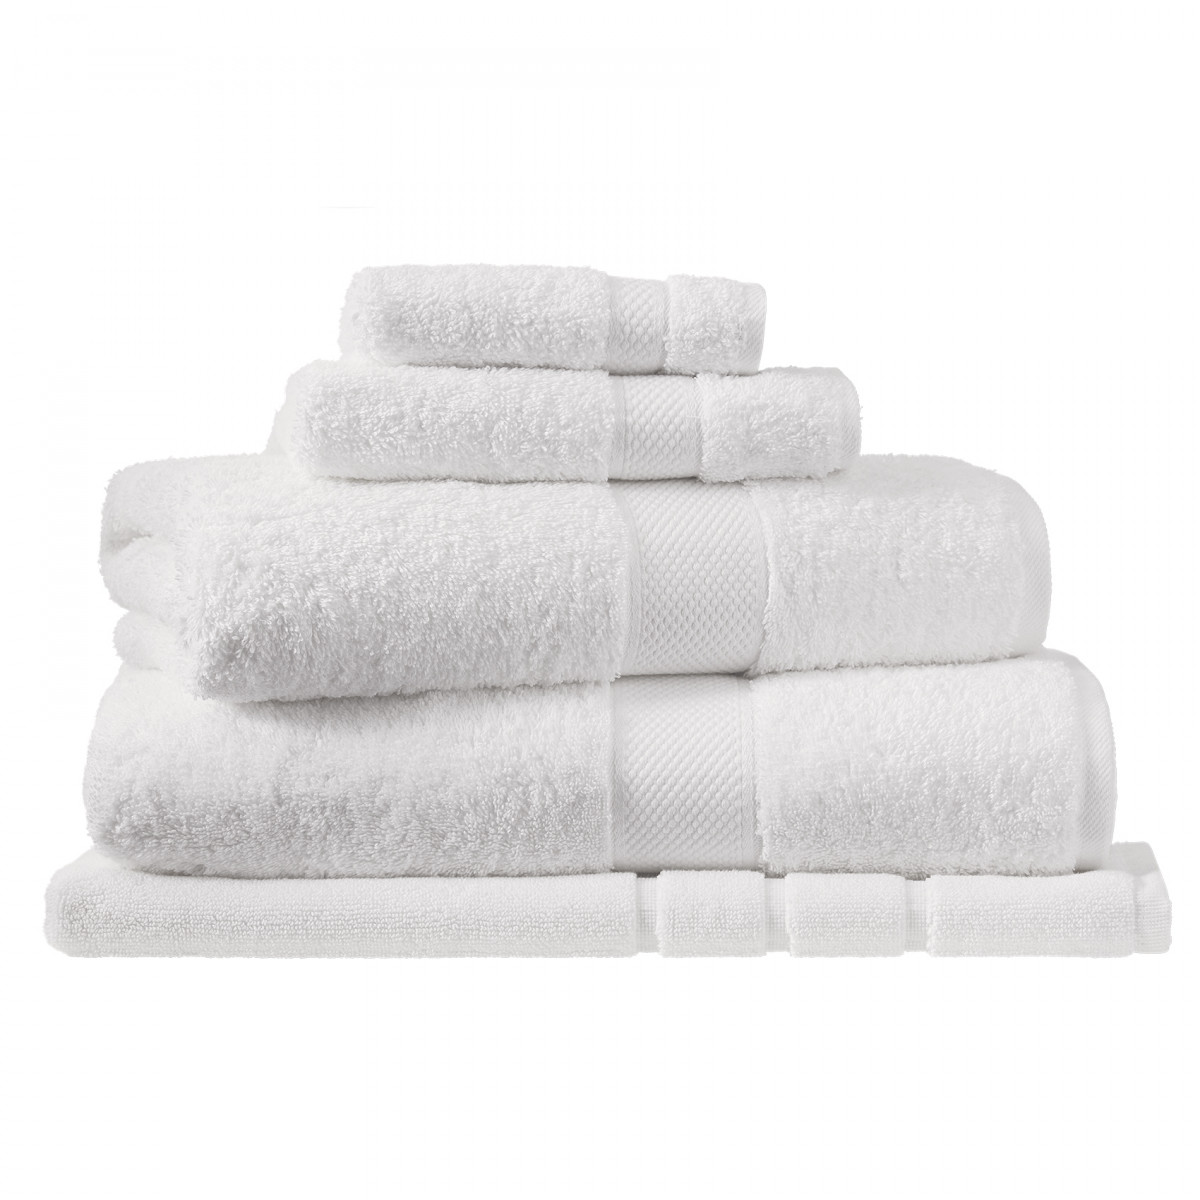 Sheridan Luxury Egyptian Towel Collection - Snow